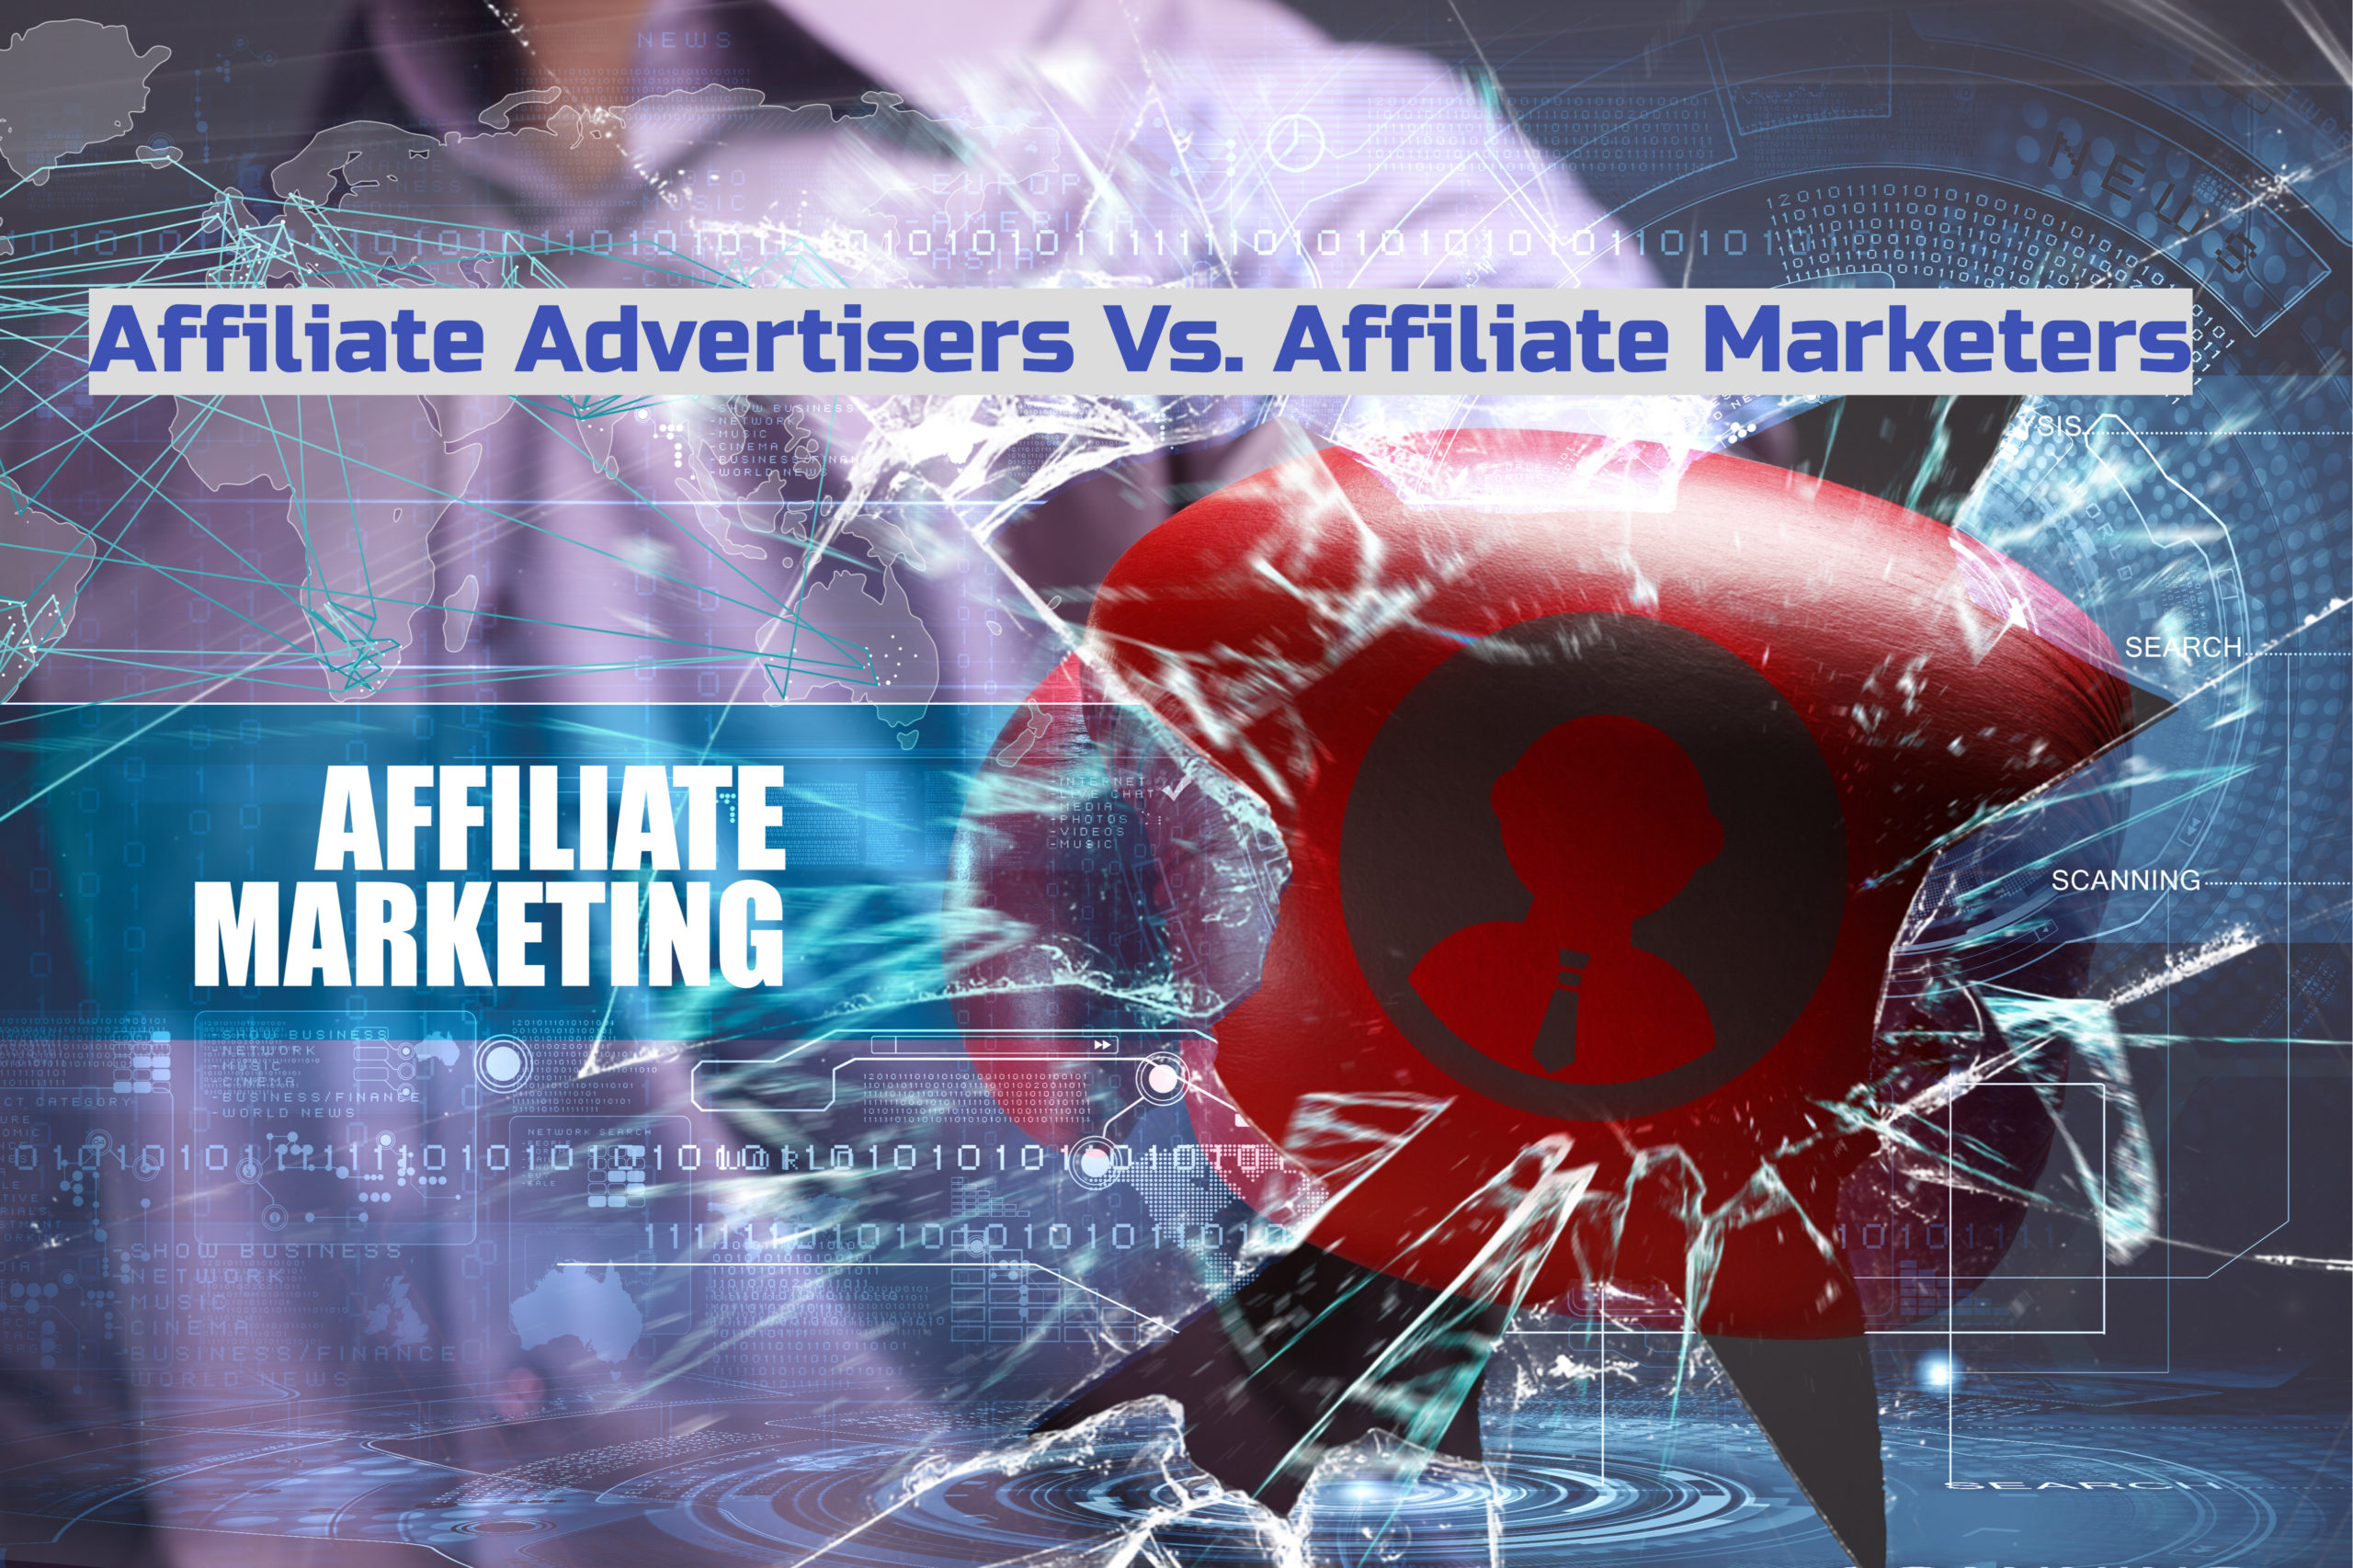 Affiliate Advertisers Vs. Affiliate Marketers - How They Vary and What Makes Them Beneficial